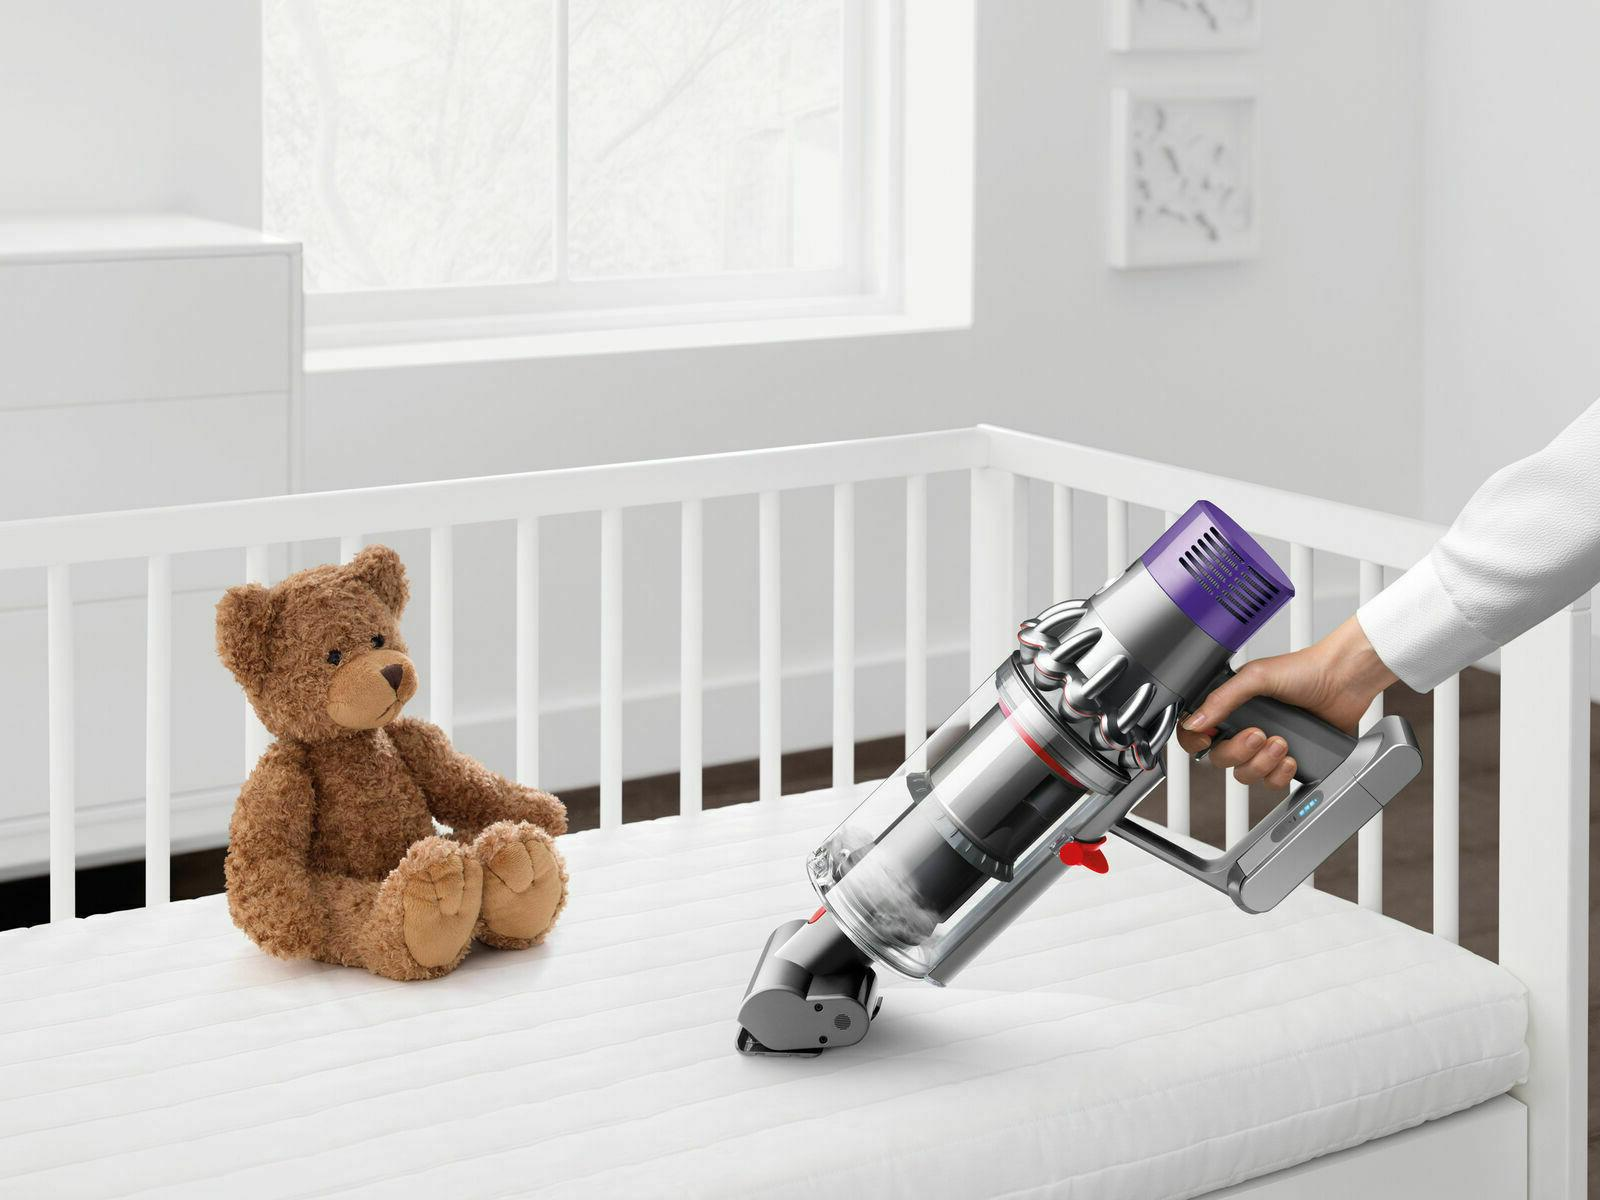 Dyson Cyclone pro wireless with accessories